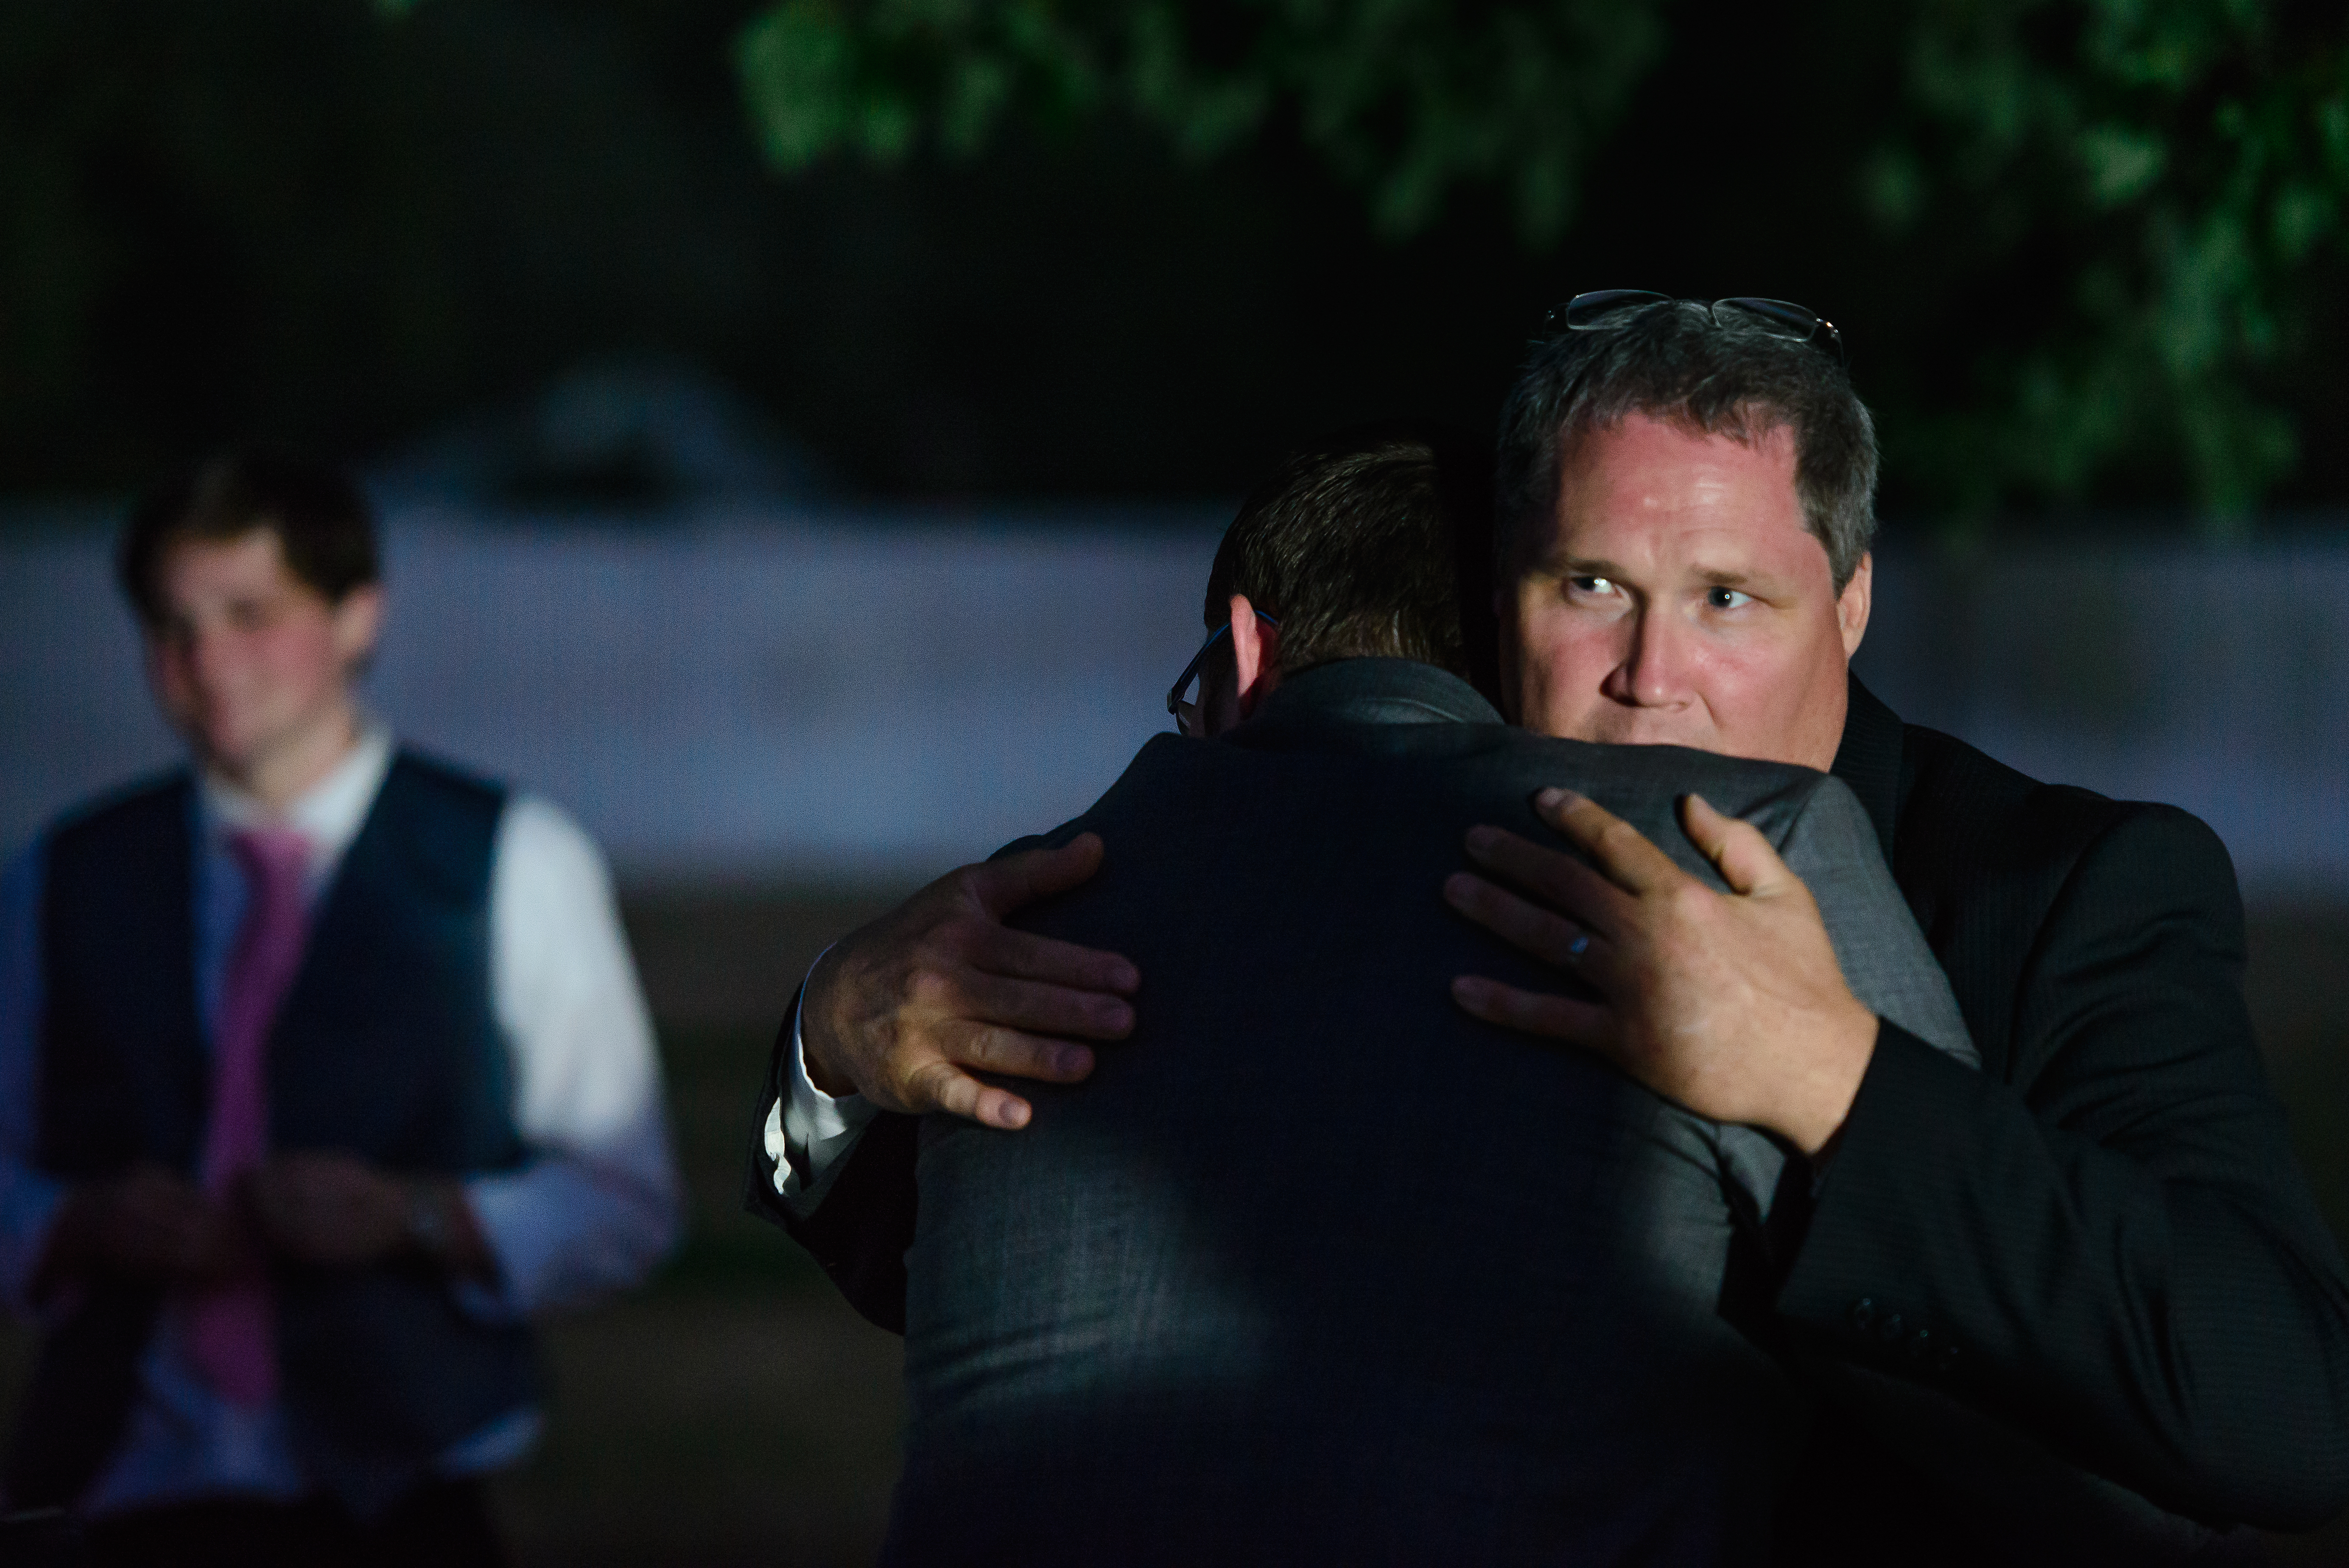 And, one last hug from dad before they hit the road. The potato dad had wedged into the getaway car tailpipe popped out with a loud bang before they even got out of the parking lot.